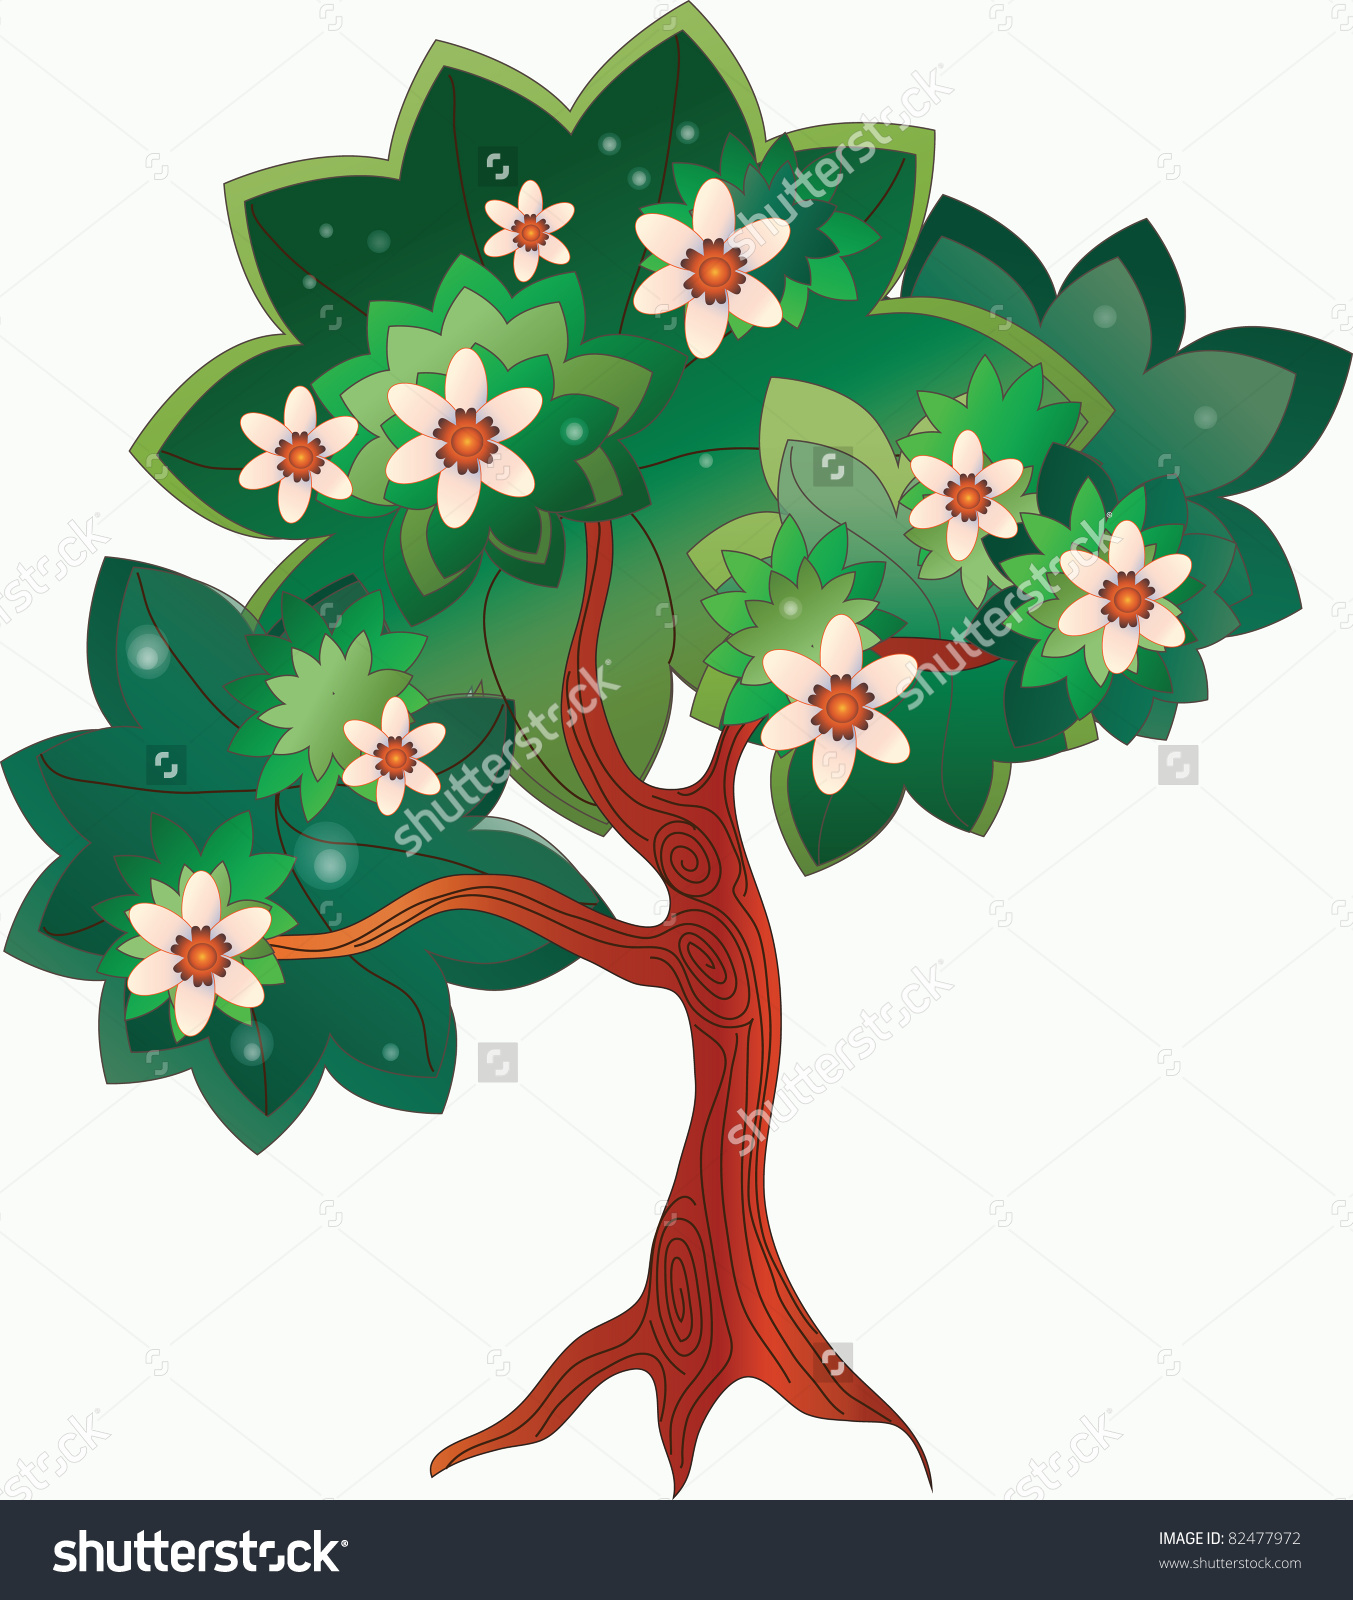 Image Of A Cartoon Tree With A Flourishing Crown Stock Photo.